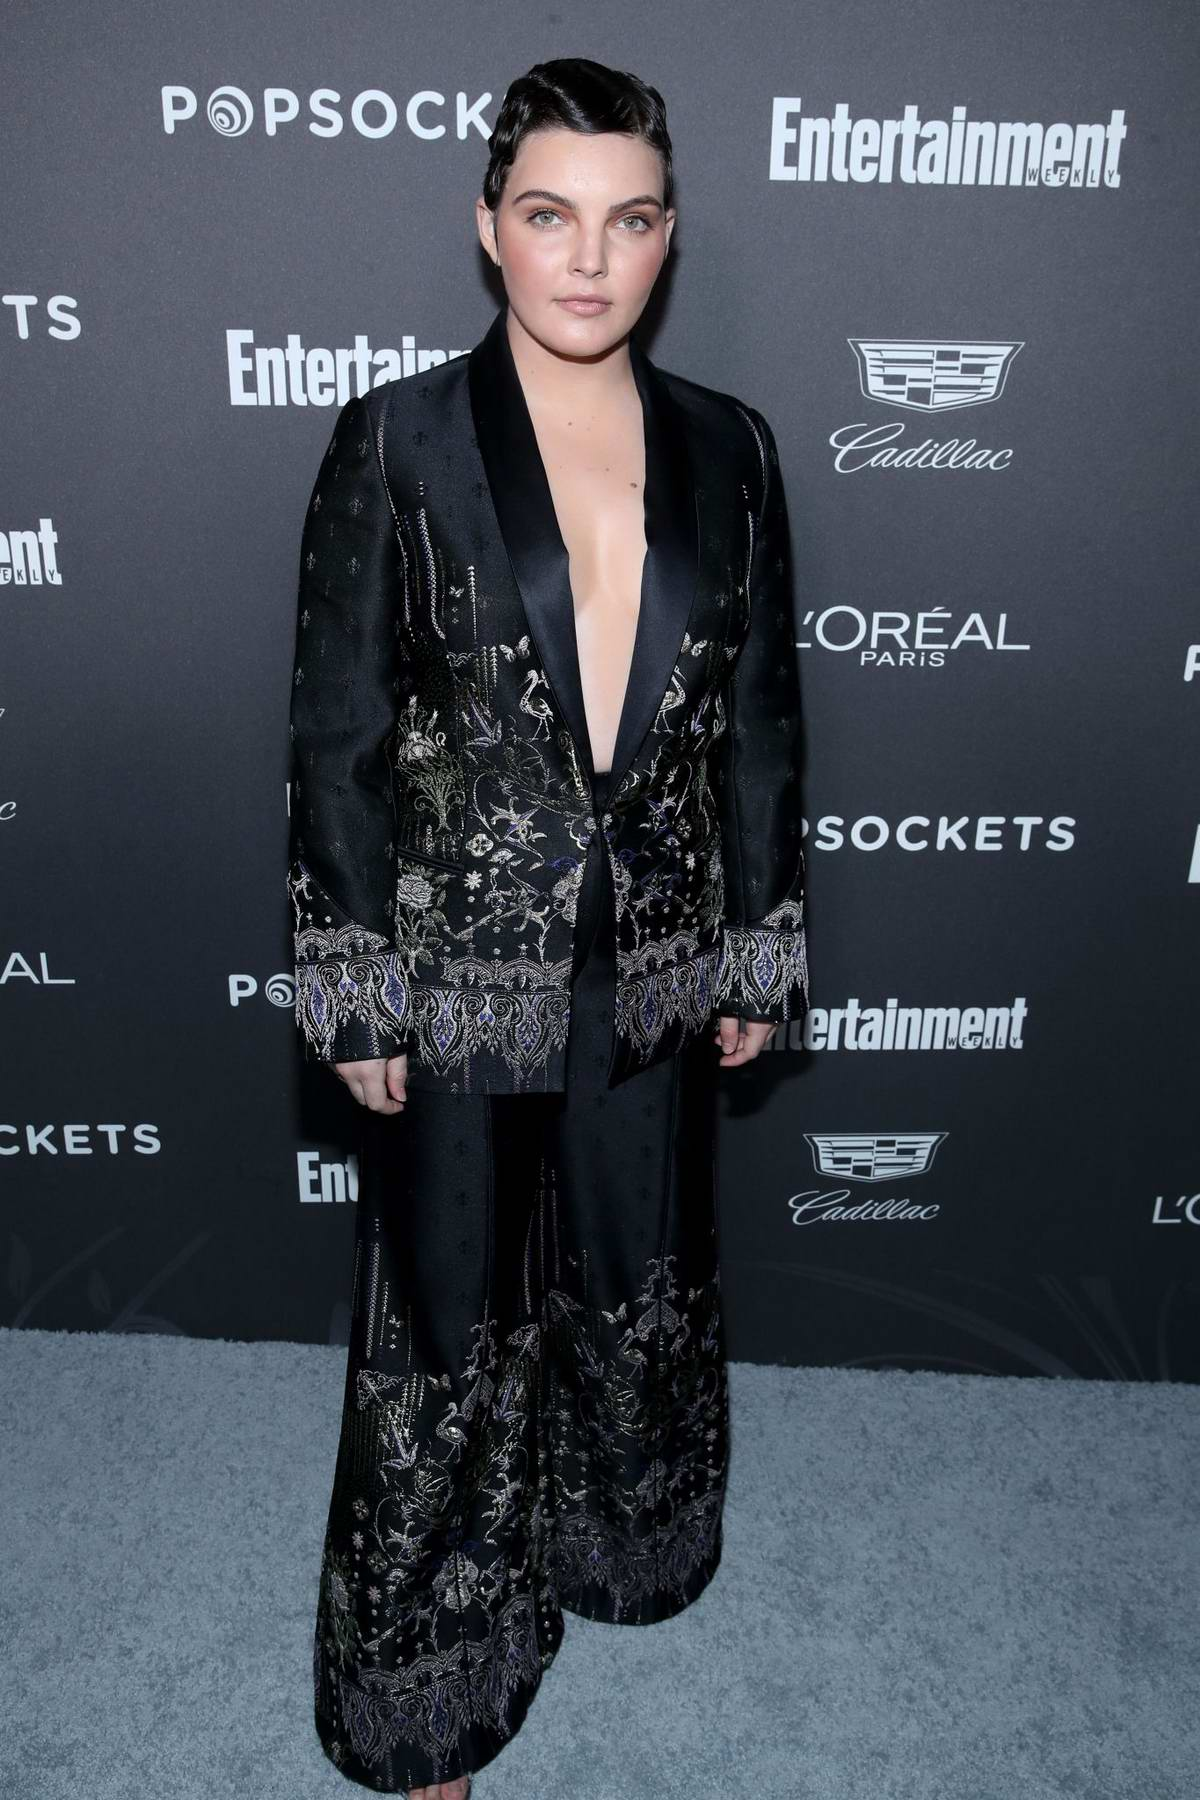 Camren Bicondova attends the 25th Annual Screen Actors Guild Awards (SAG 2019) at the Shrine Auditorium in Los Angeles